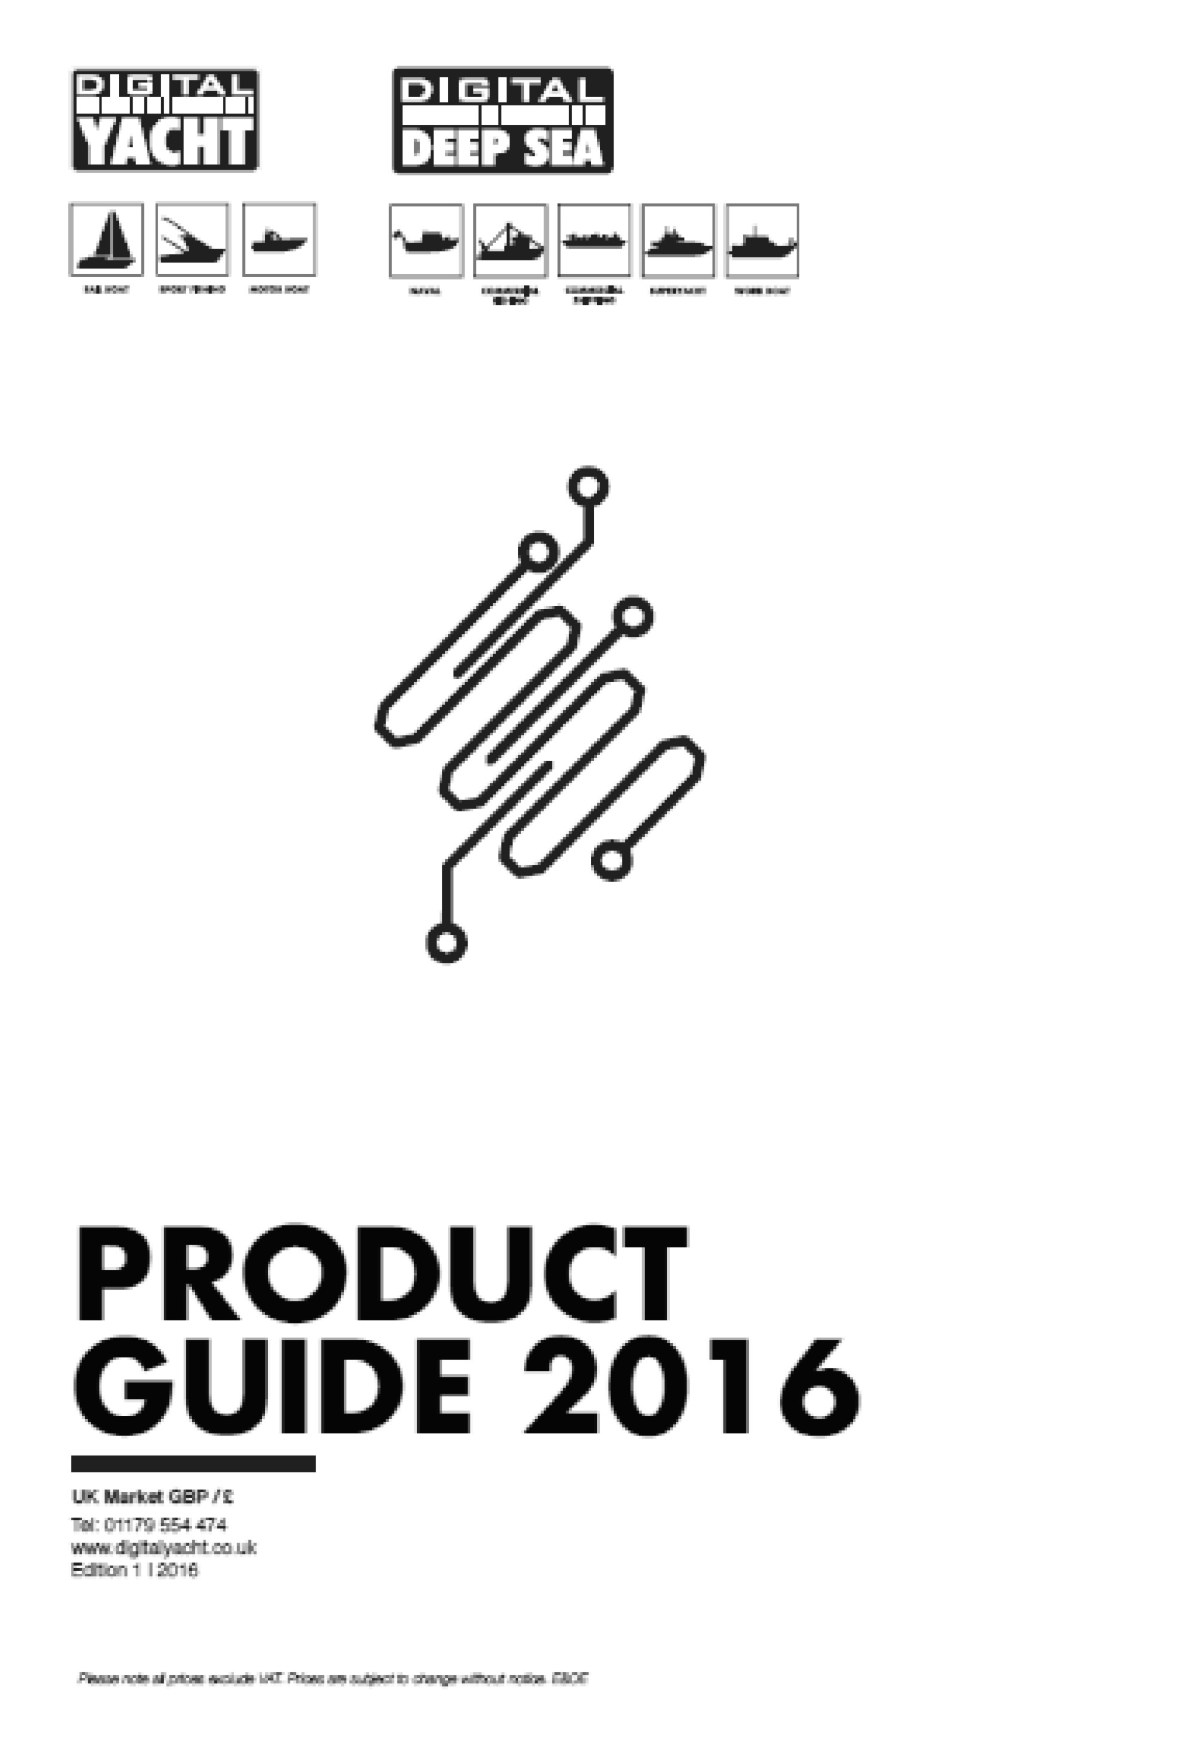 2016 PRODUCT GUIDE FRONT COVER JPEG